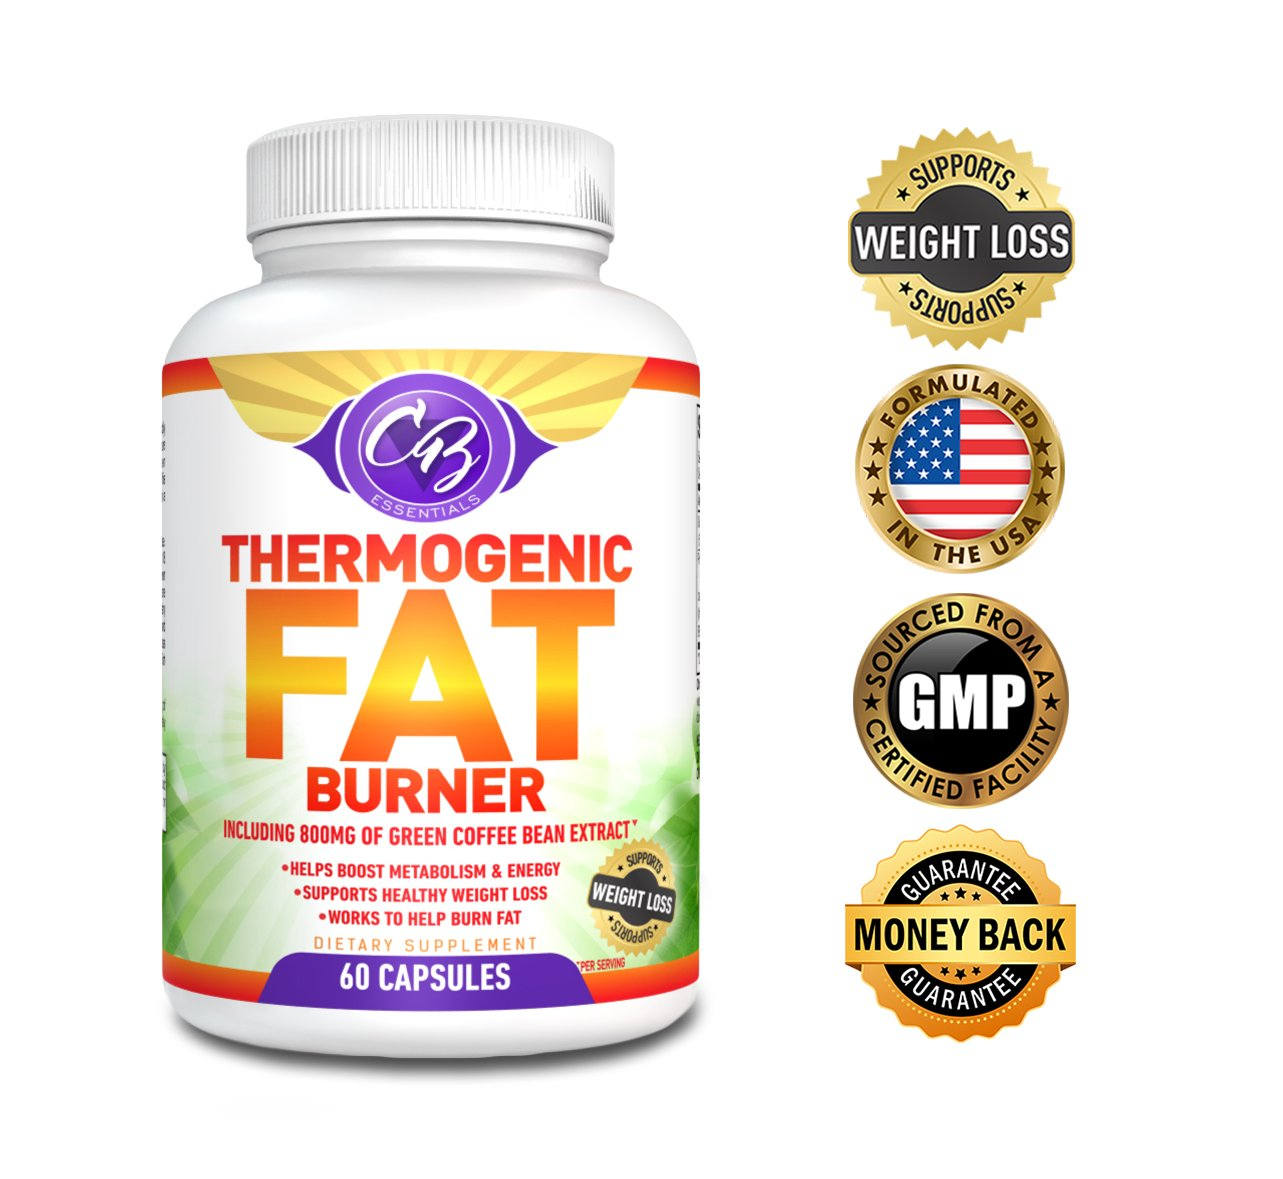 Best Thermogenic Fat Burner Weight Loss Pills Garcinia Cambogia Green Tea Extract Raspberry Ketones 800mg Green Coffee Bean Extract for Weight Loss Belly Fat Burners Supplement Lose Fast CB Essentials by CB Essentials LLC